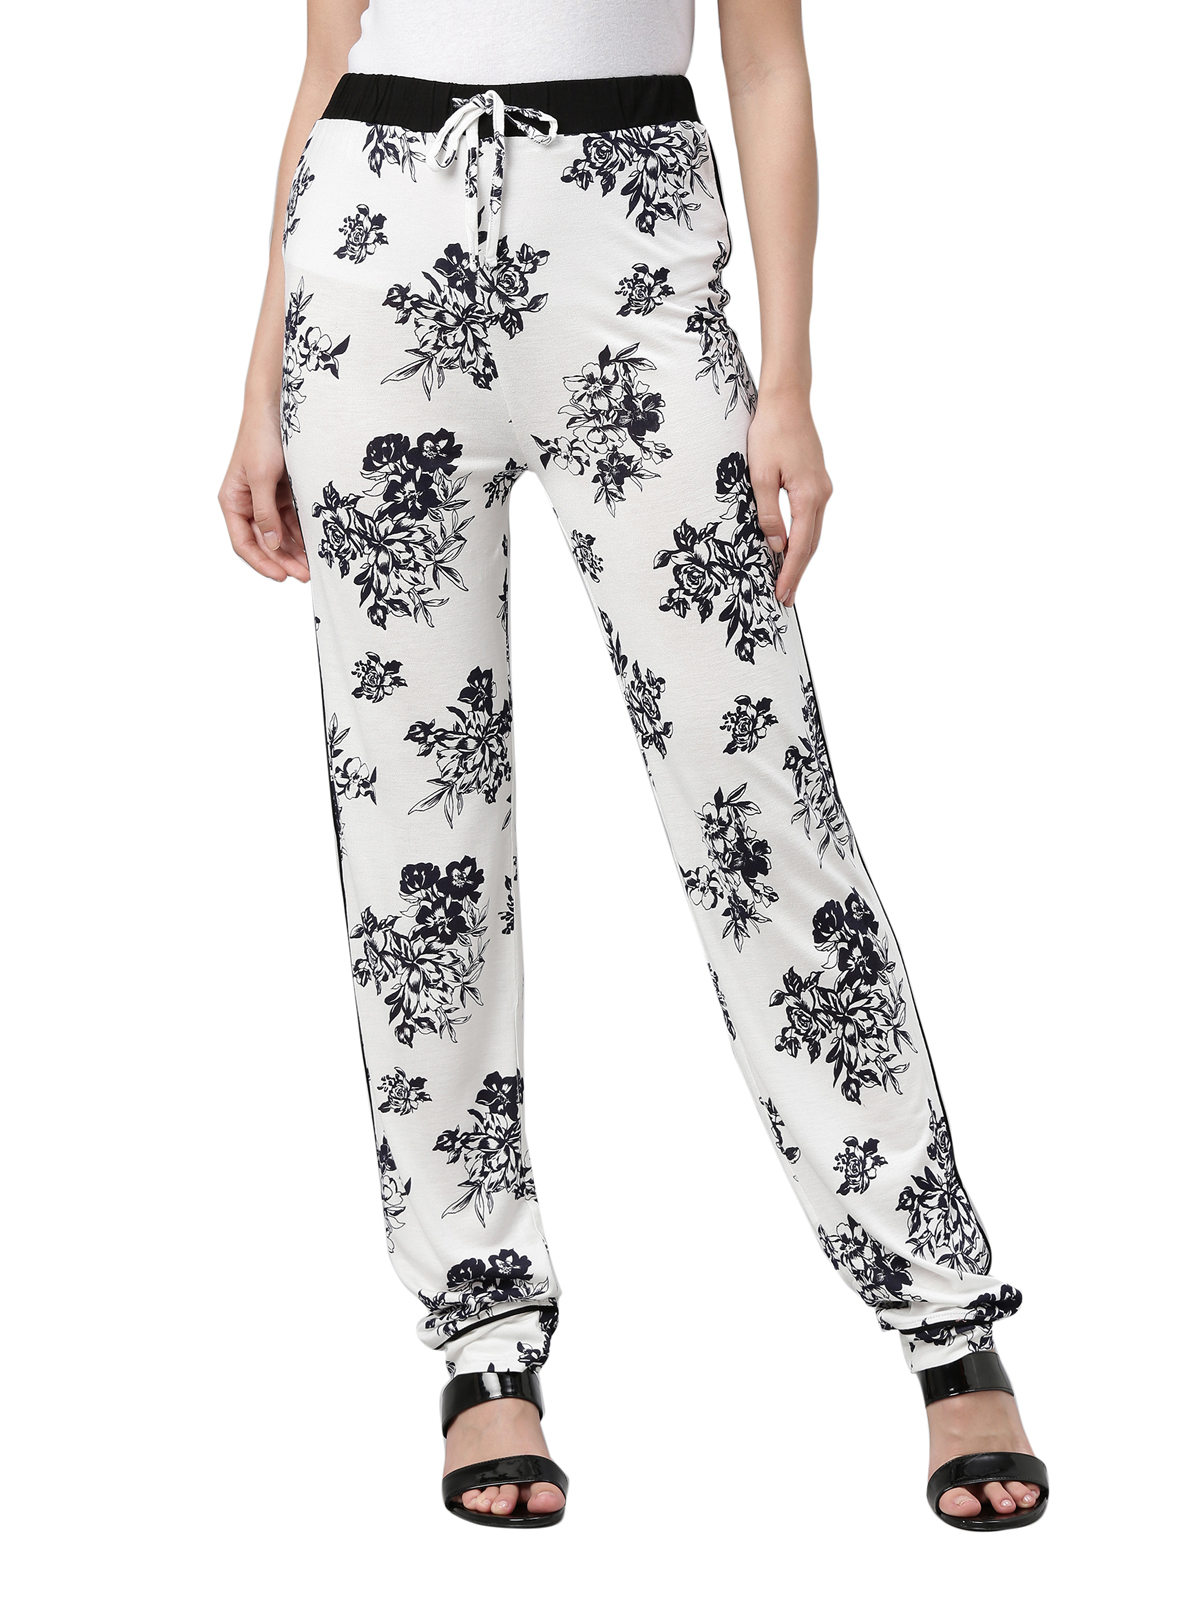 Y CAN F | YCANF Women's Casual  lounge pants